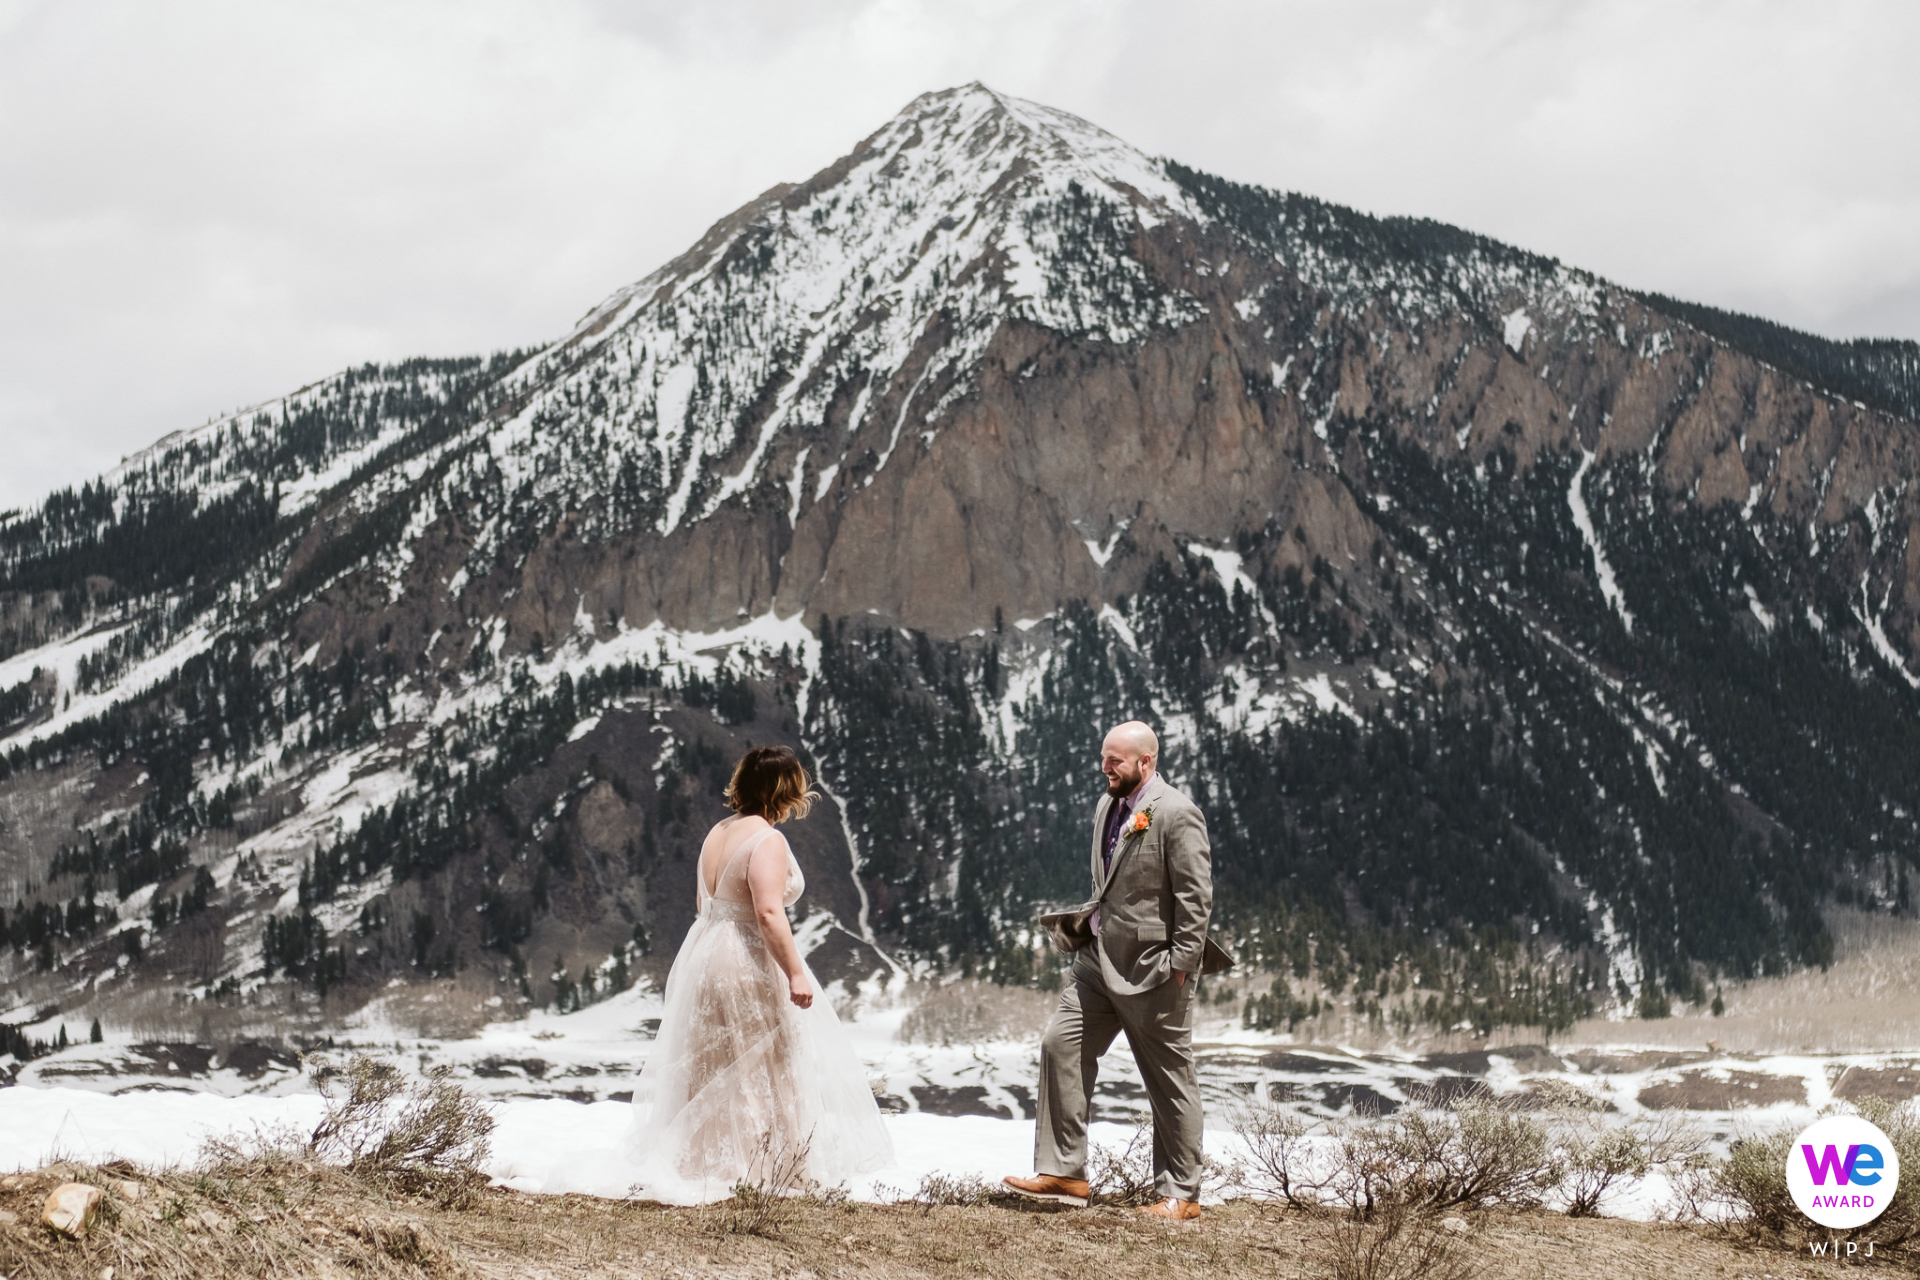 Crested Butte, CO Elopement Image | Bride and groom do a first look with mountain views